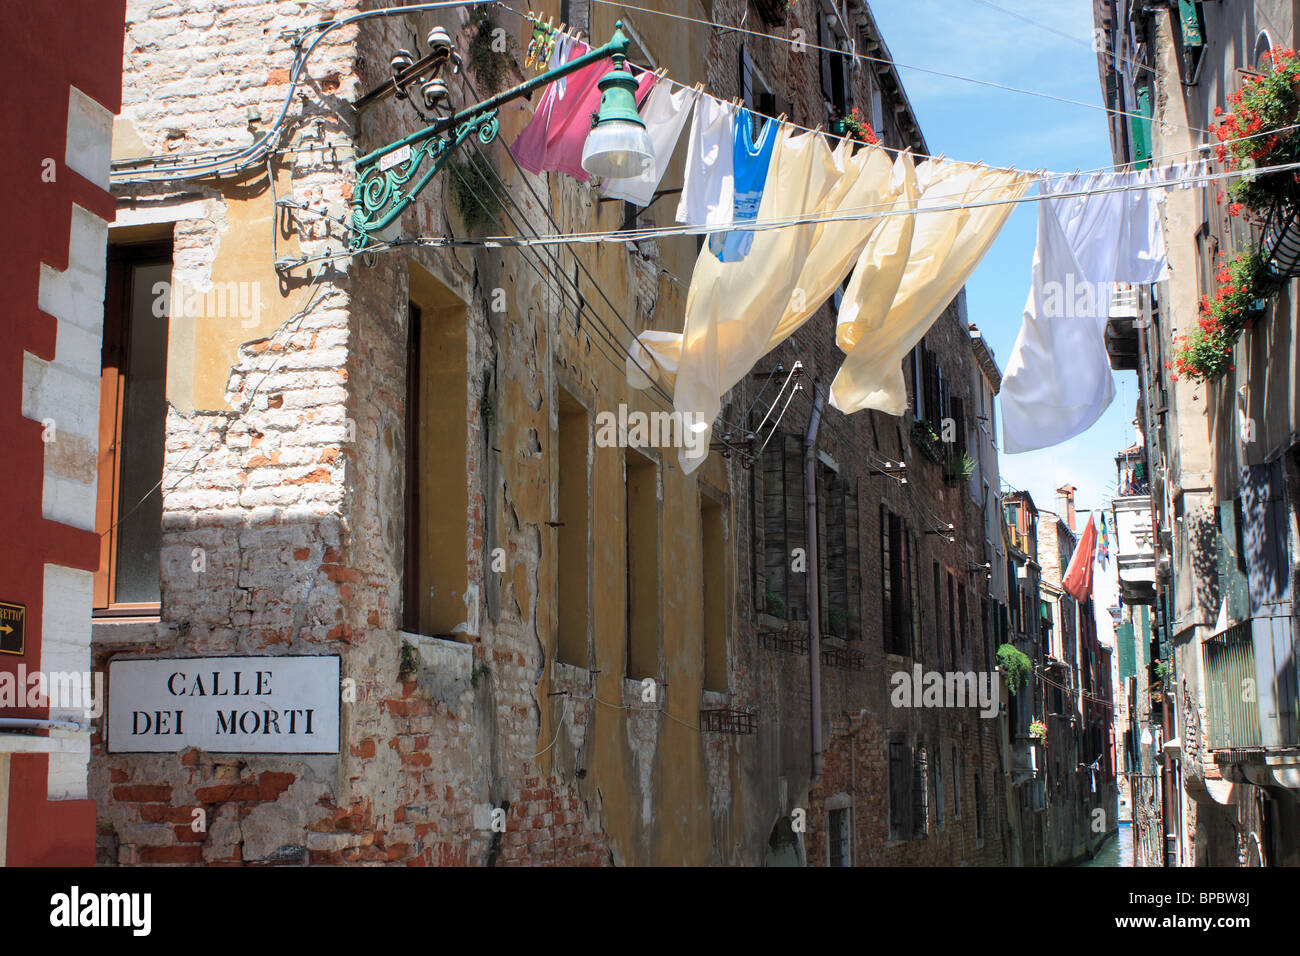 Clothesline in the wind, Venice, Italy - Stock Image